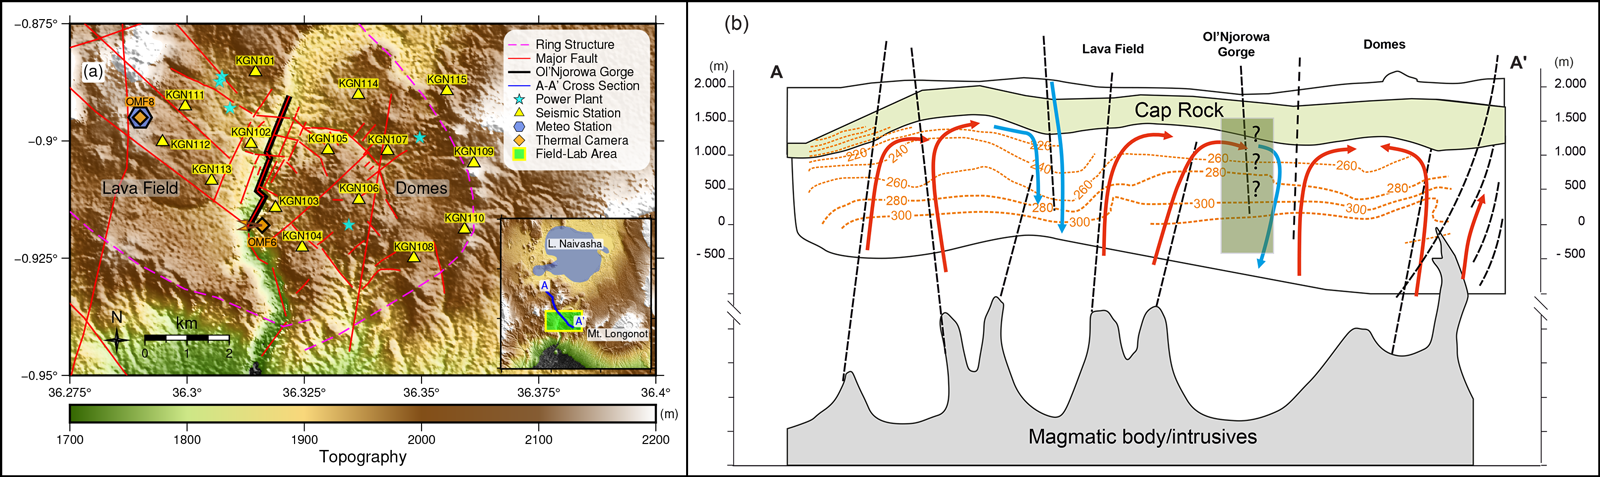 Map showing the distribution of Olkaria field lab instruments and a diagram of subsurface features associated with the Olkaria geothermal resource